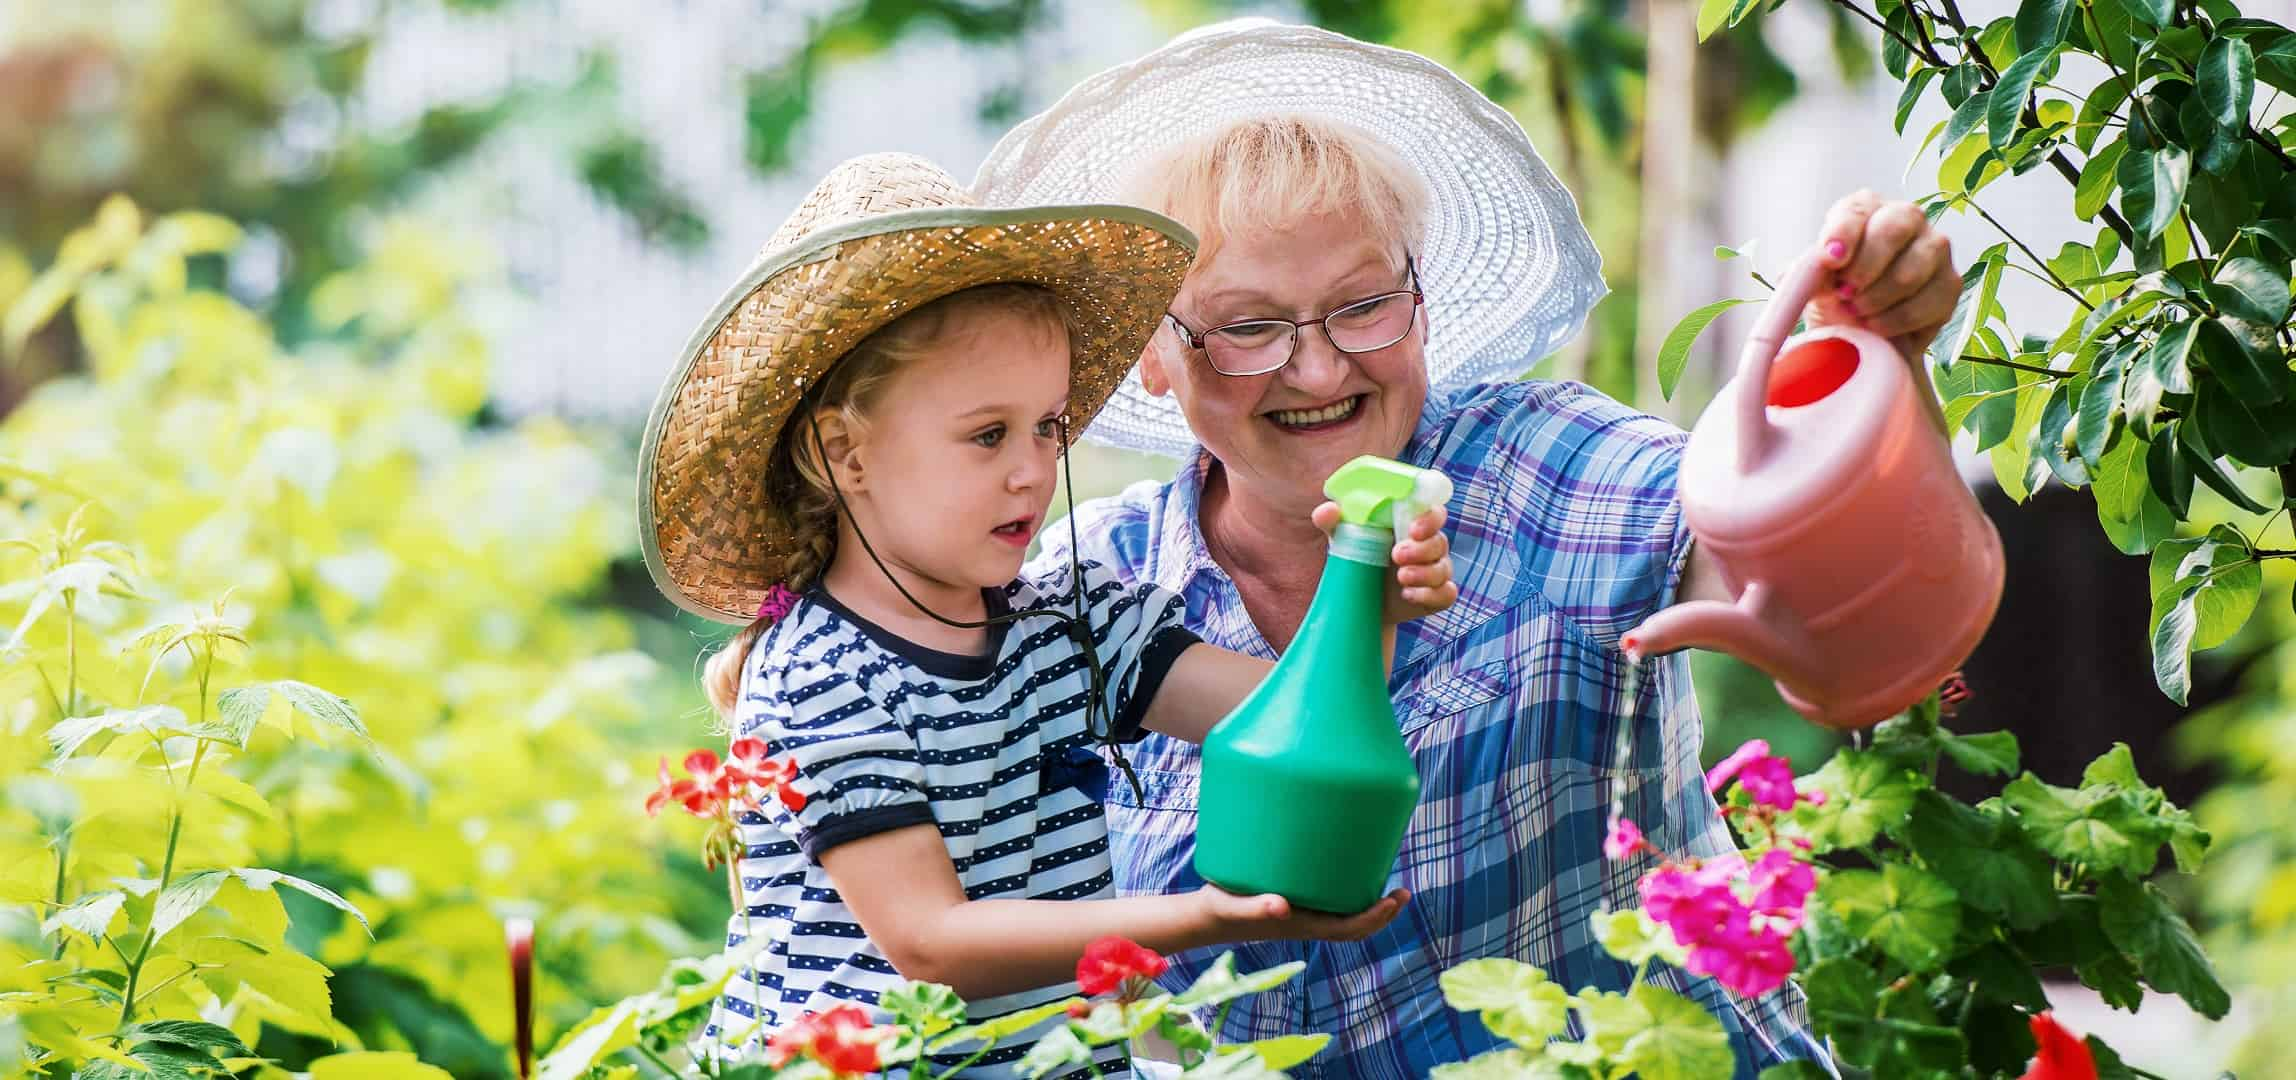 Image of grandmonther and granddaughter watering garden